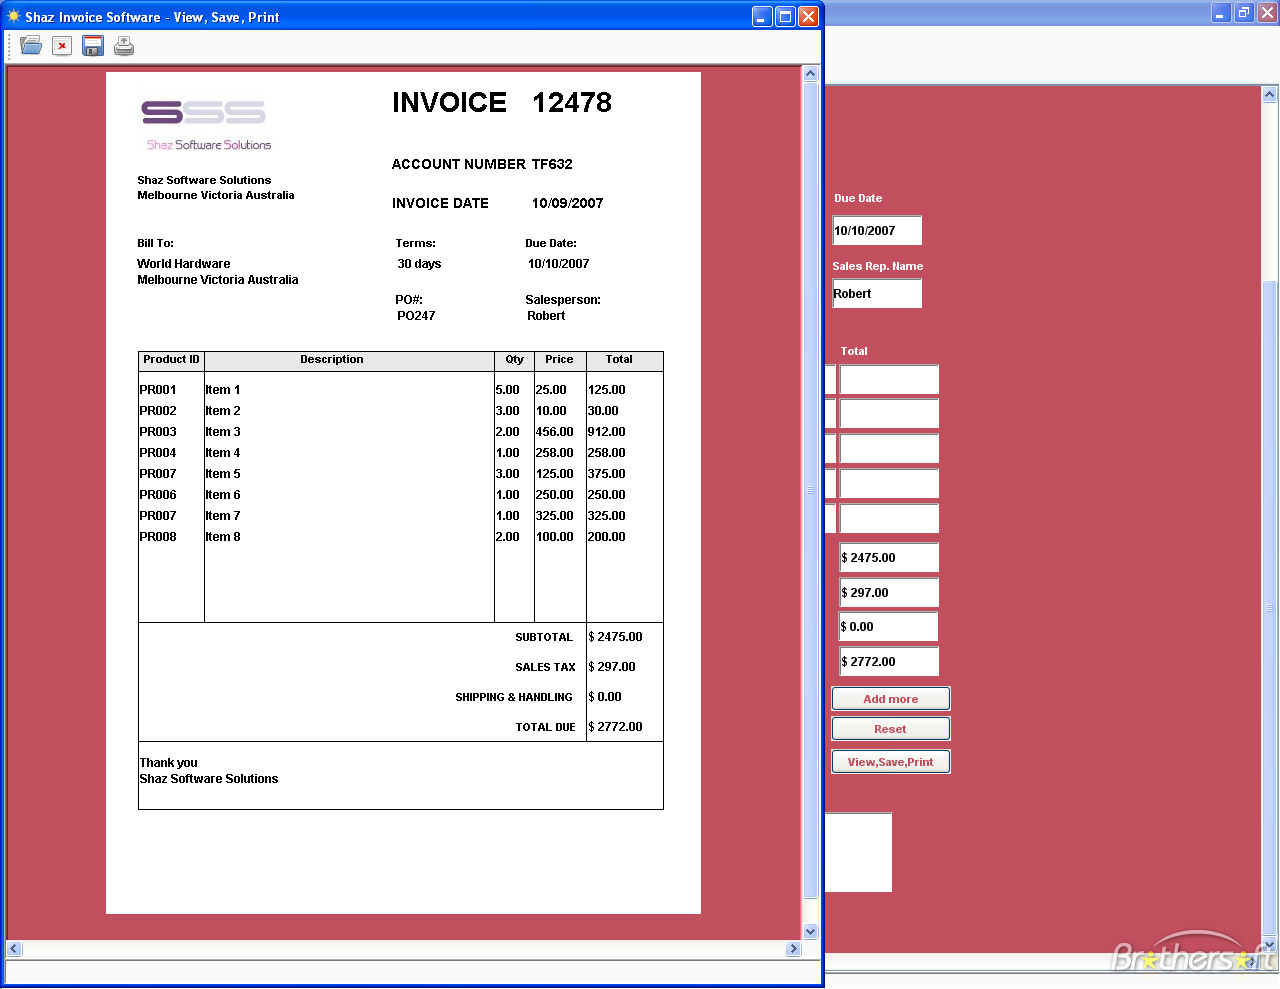 free invoicing software shaz invoice software 64915 1234160724